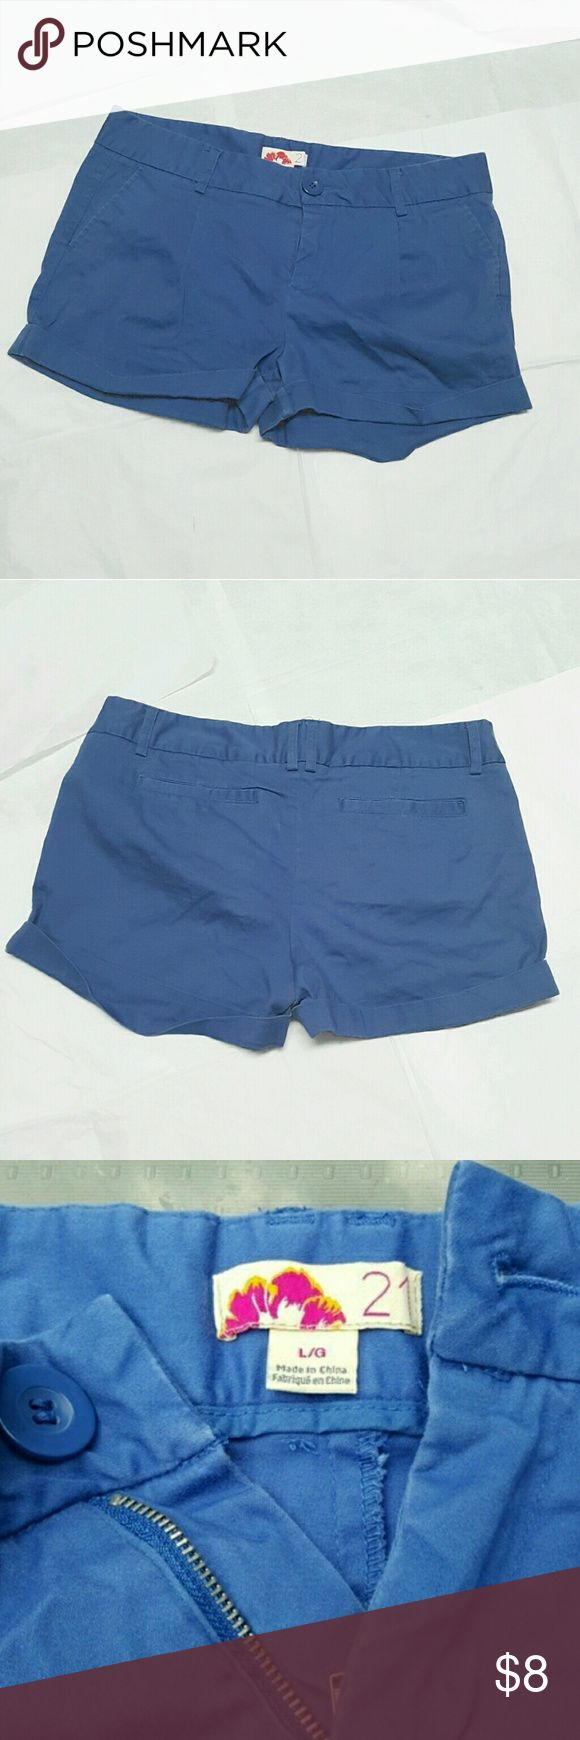 Periwinkle blue F21 pocket shorts Periwinkle, light blue basic shorts with 4 pockets. Rolled along the bottom. Zip up and button close. Brand is F21. Size L, large. No flaws! :) Forever 21 Shorts